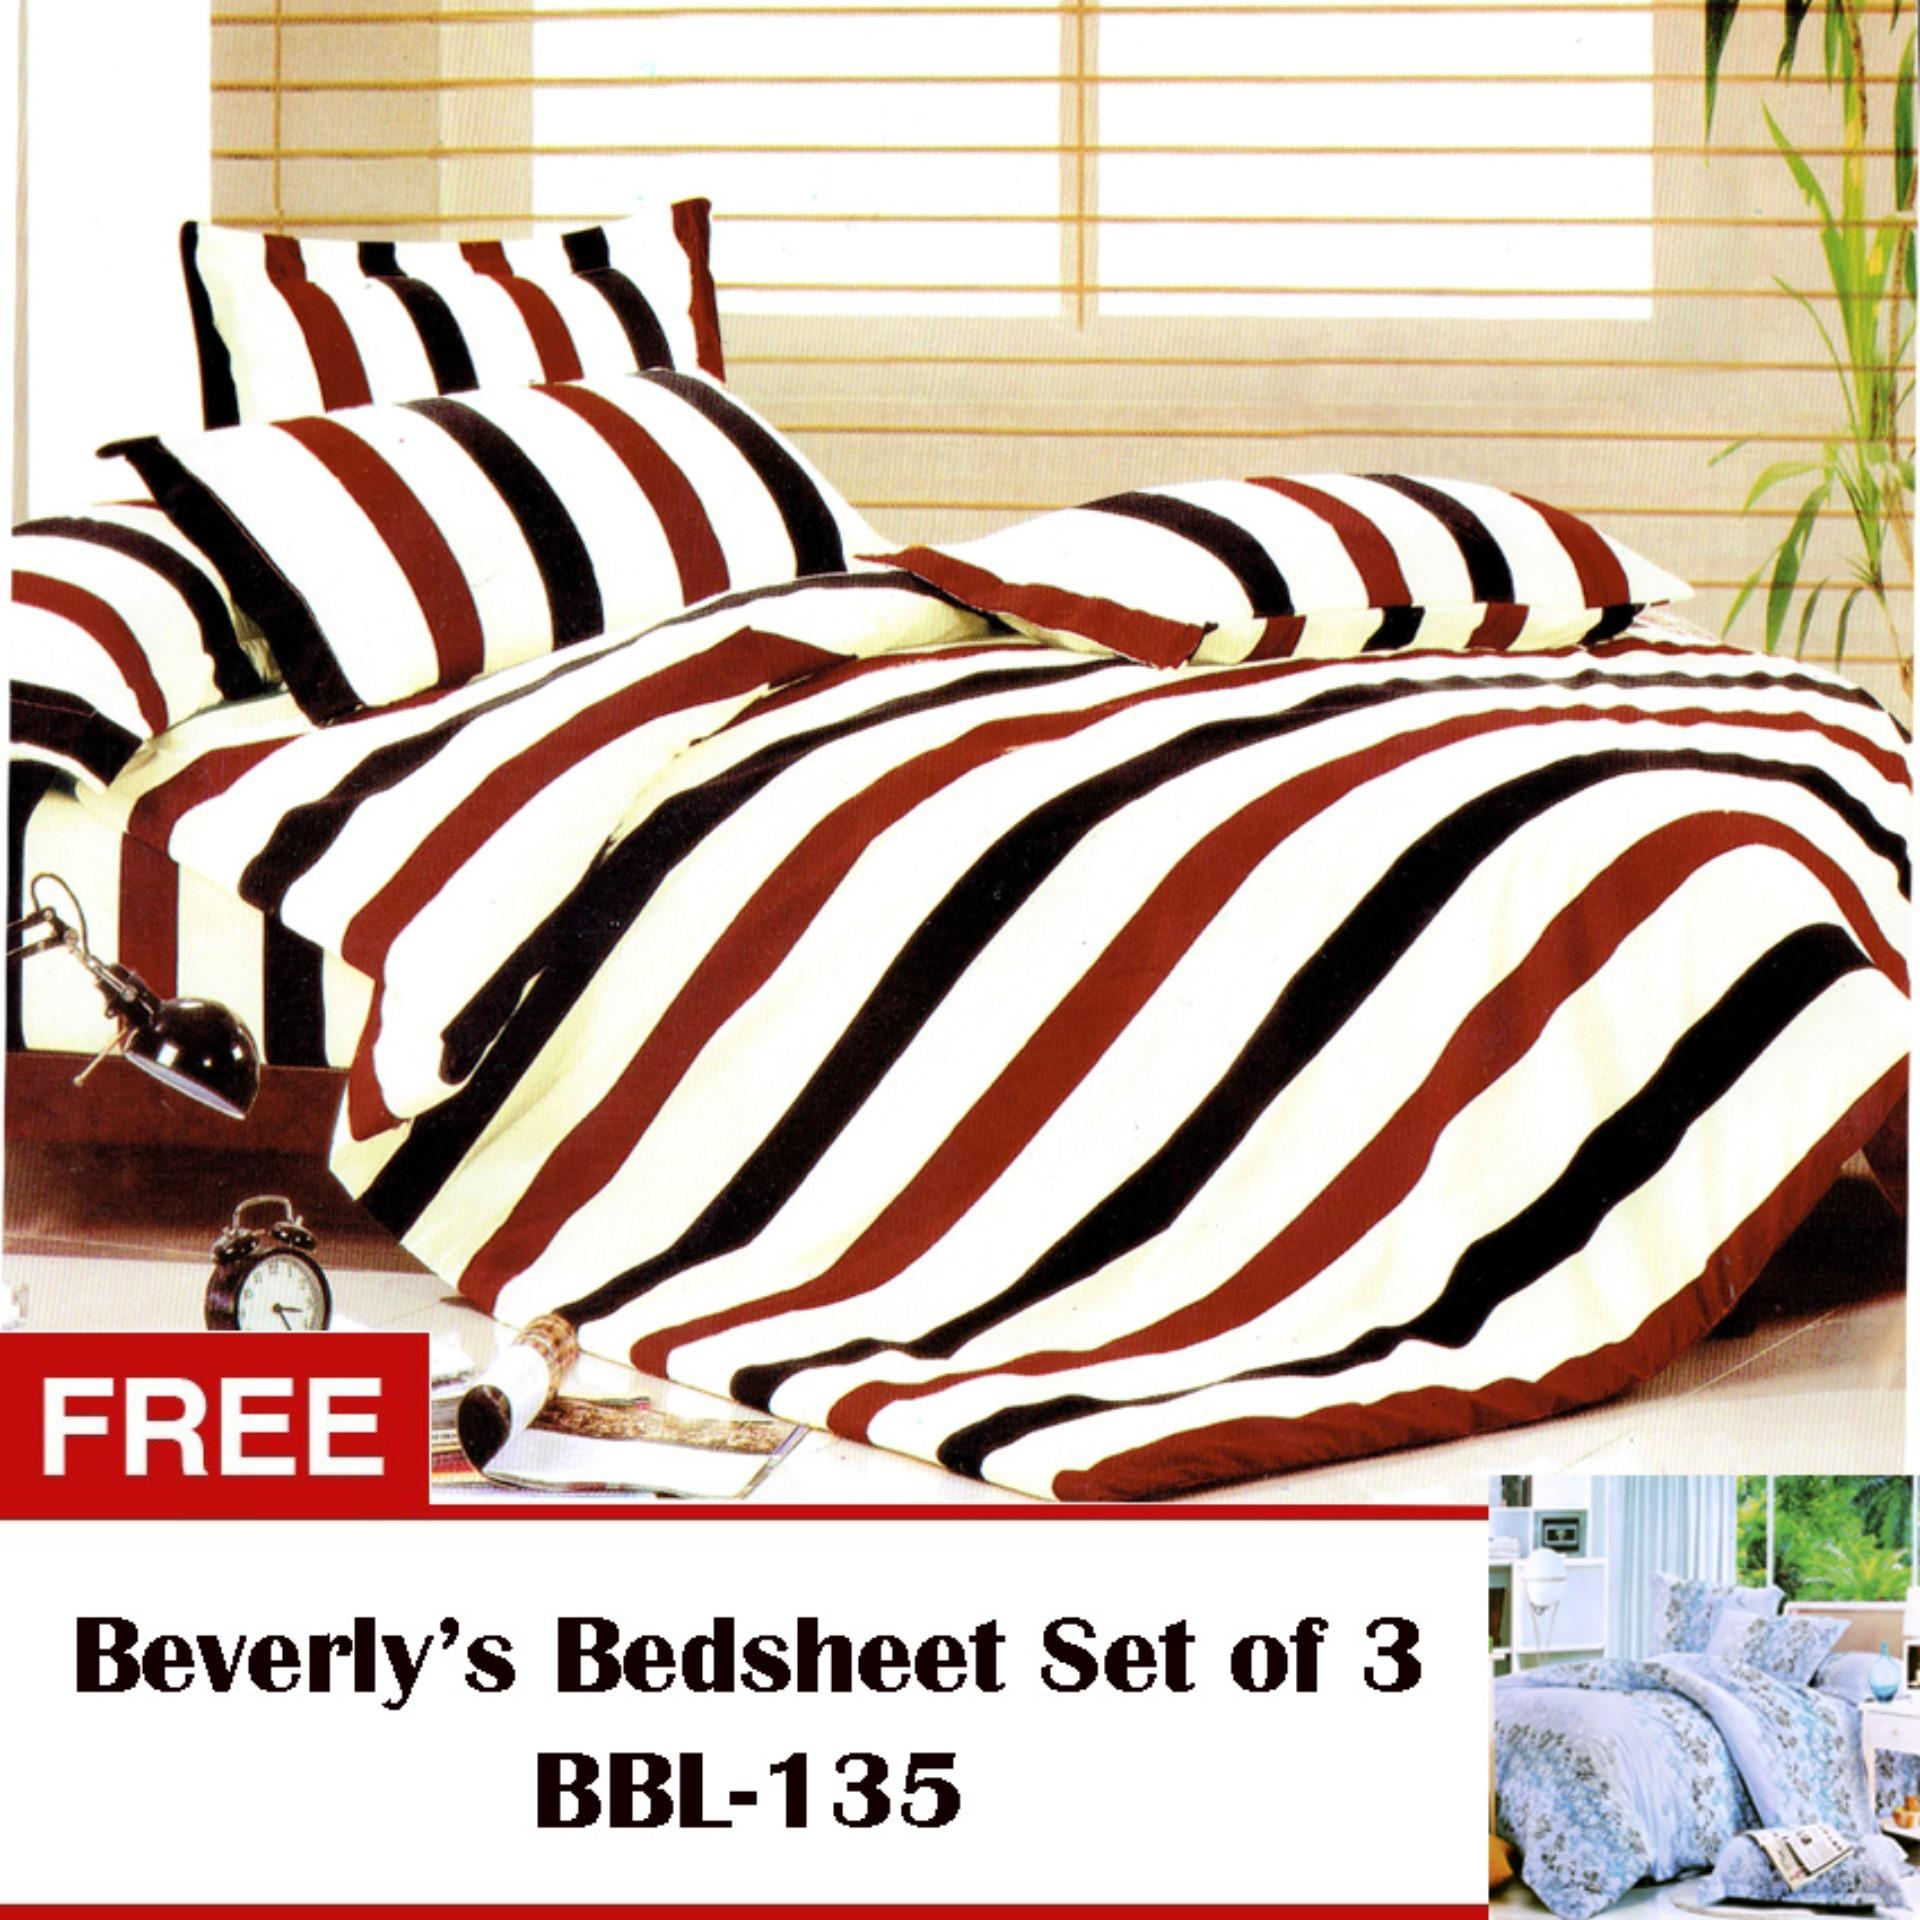 Beverly's Linen Collection Bedsheet Set of 3(BBL-085)Twin(Single)with Free Beverly's Linen Collection Bedsheet Set of3(BBL-135)Twin(Single)